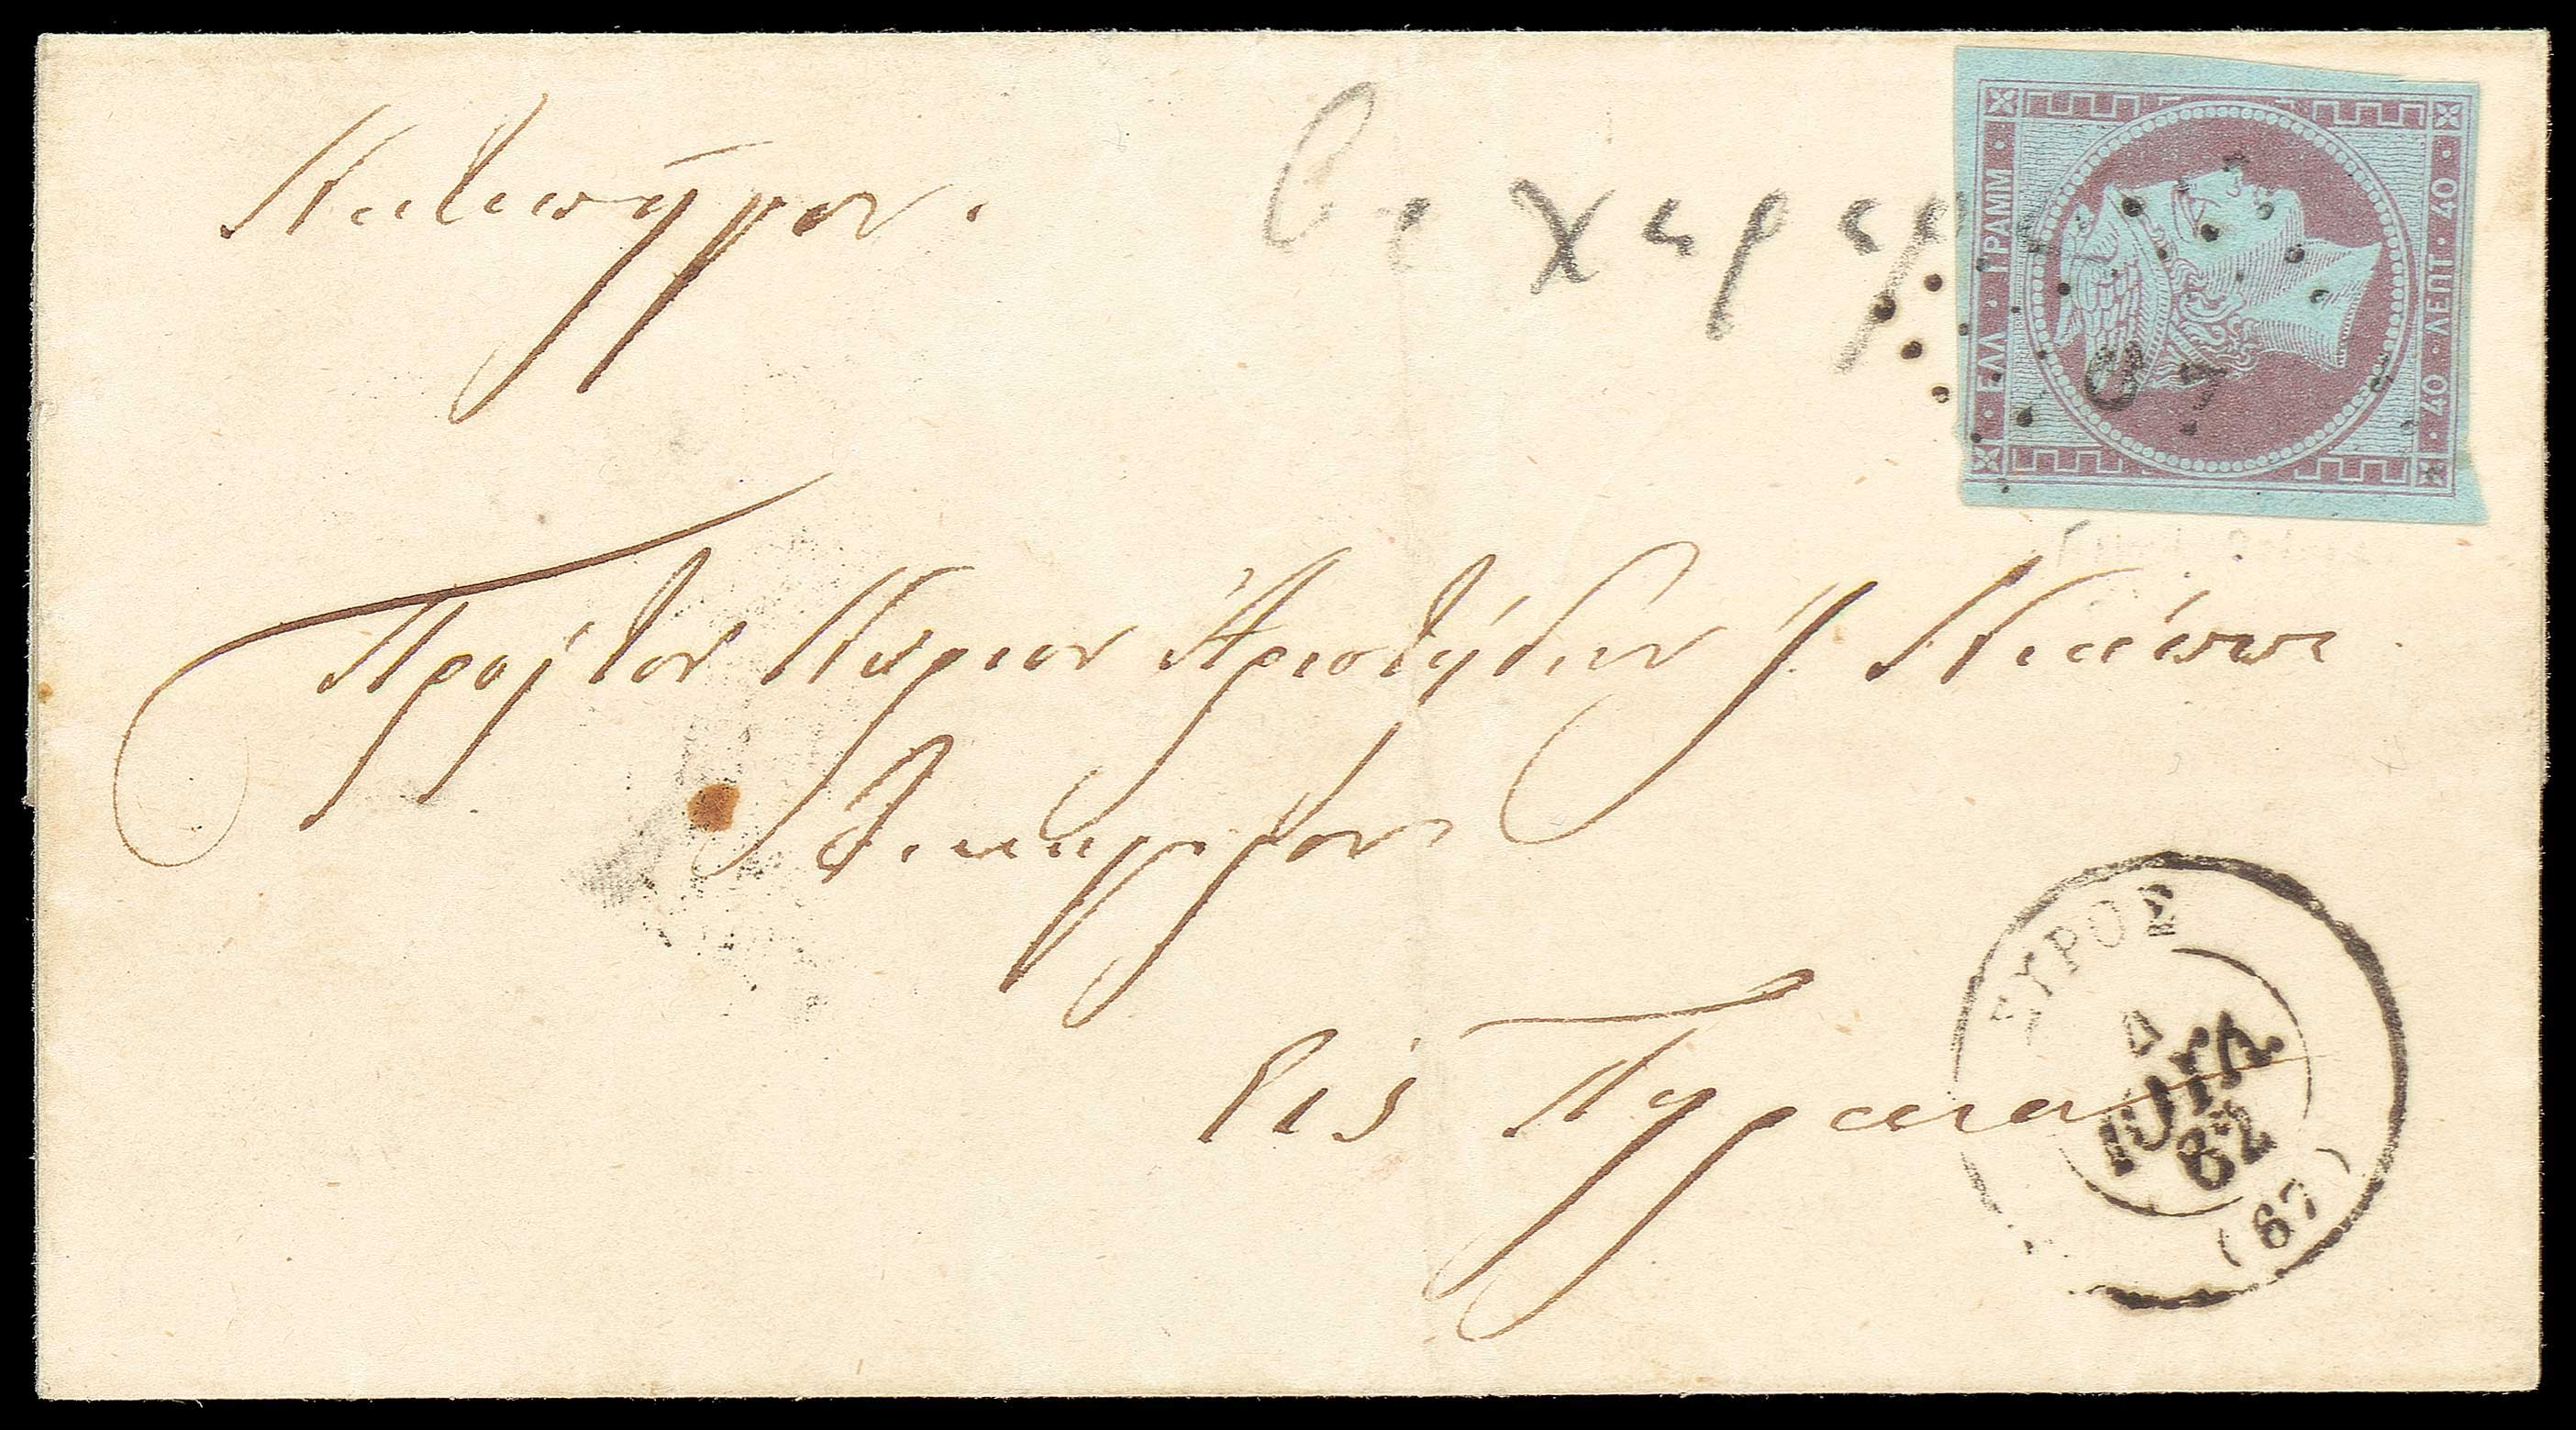 Lot 88 - -  LARGE HERMES HEAD 1861/1862 athens provisional printings -  A. Karamitsos Public & Live Internet Auction 666 Large Hermes Heads Exceptional Stamps from Great Collections